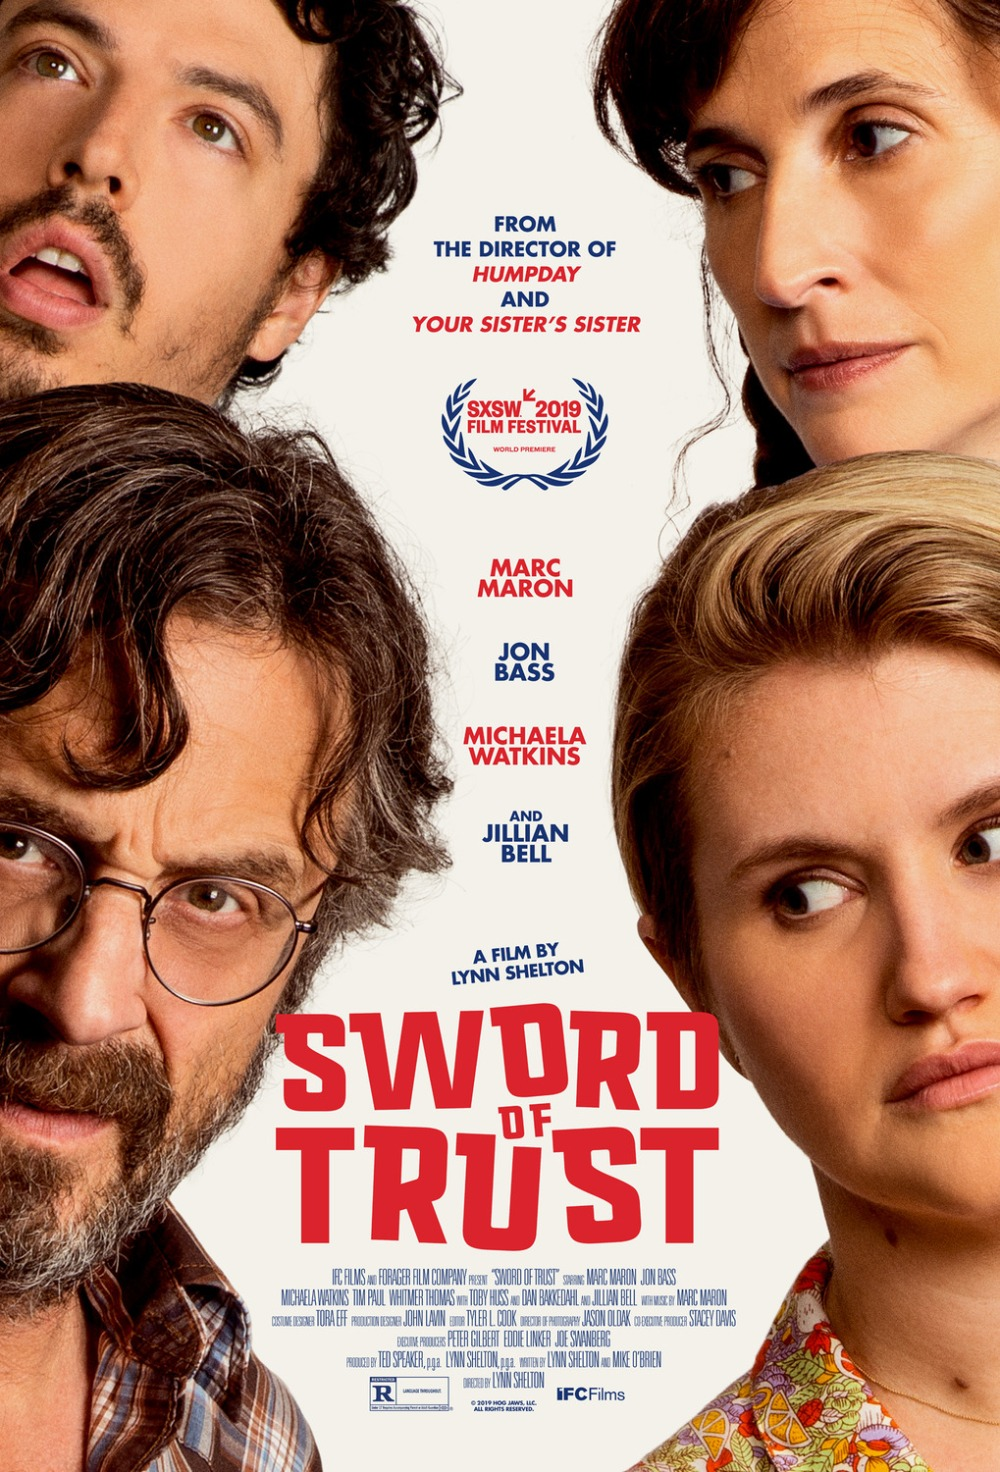 Sword of Trust movie poster